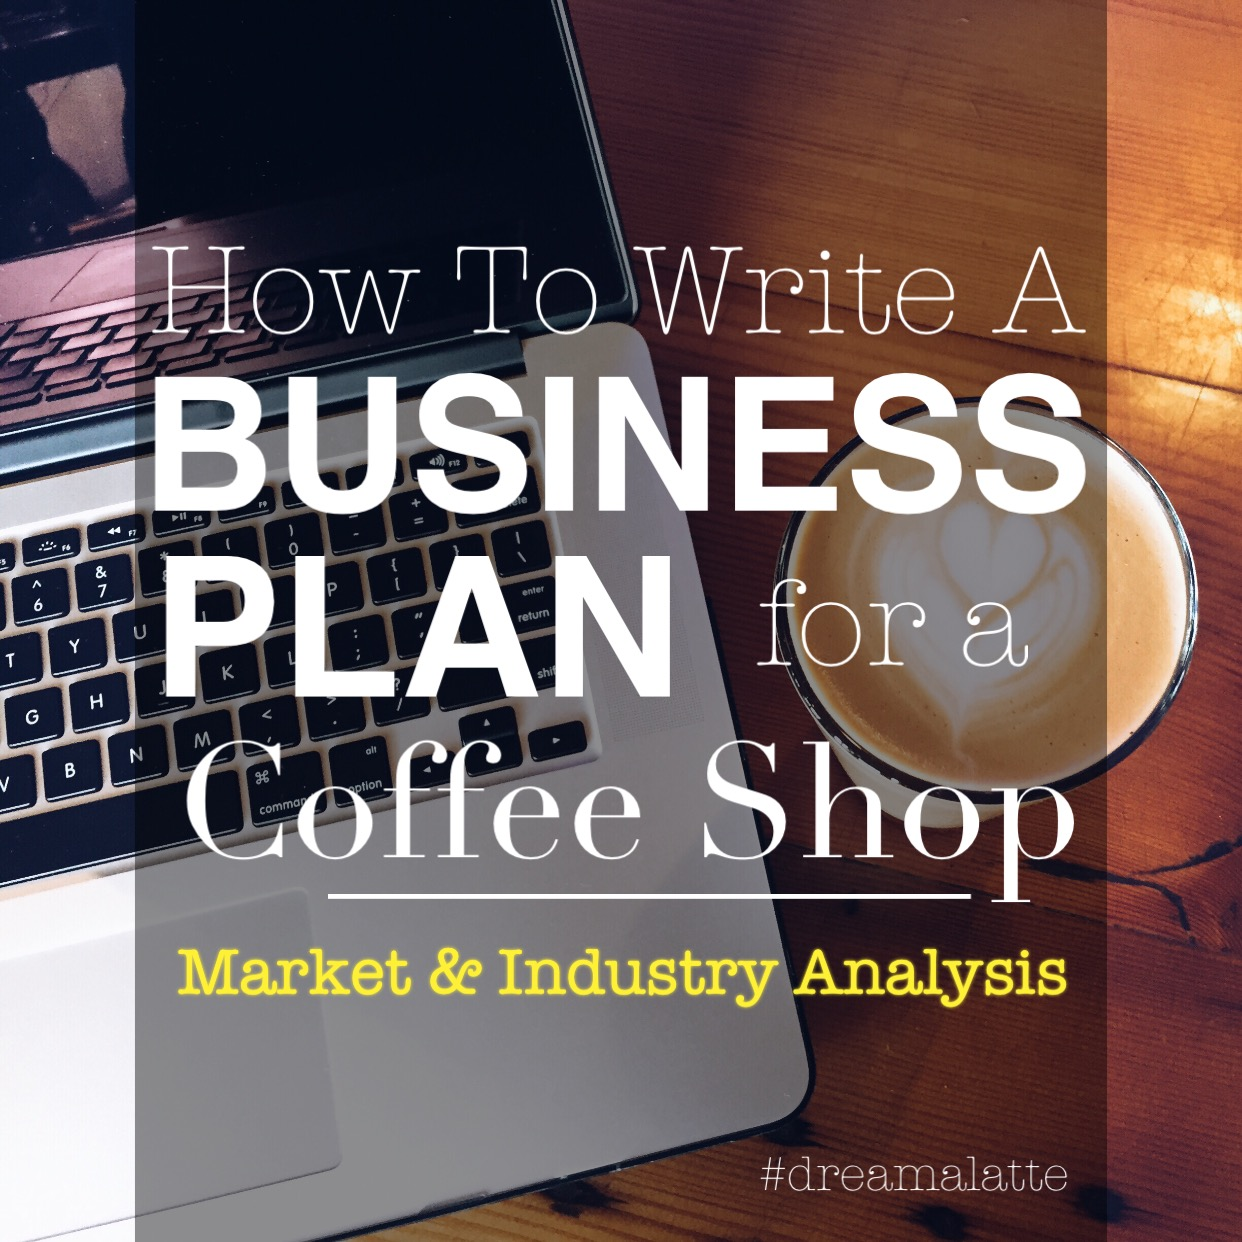 Coffee shop business plan market industry analysis for Coffee business